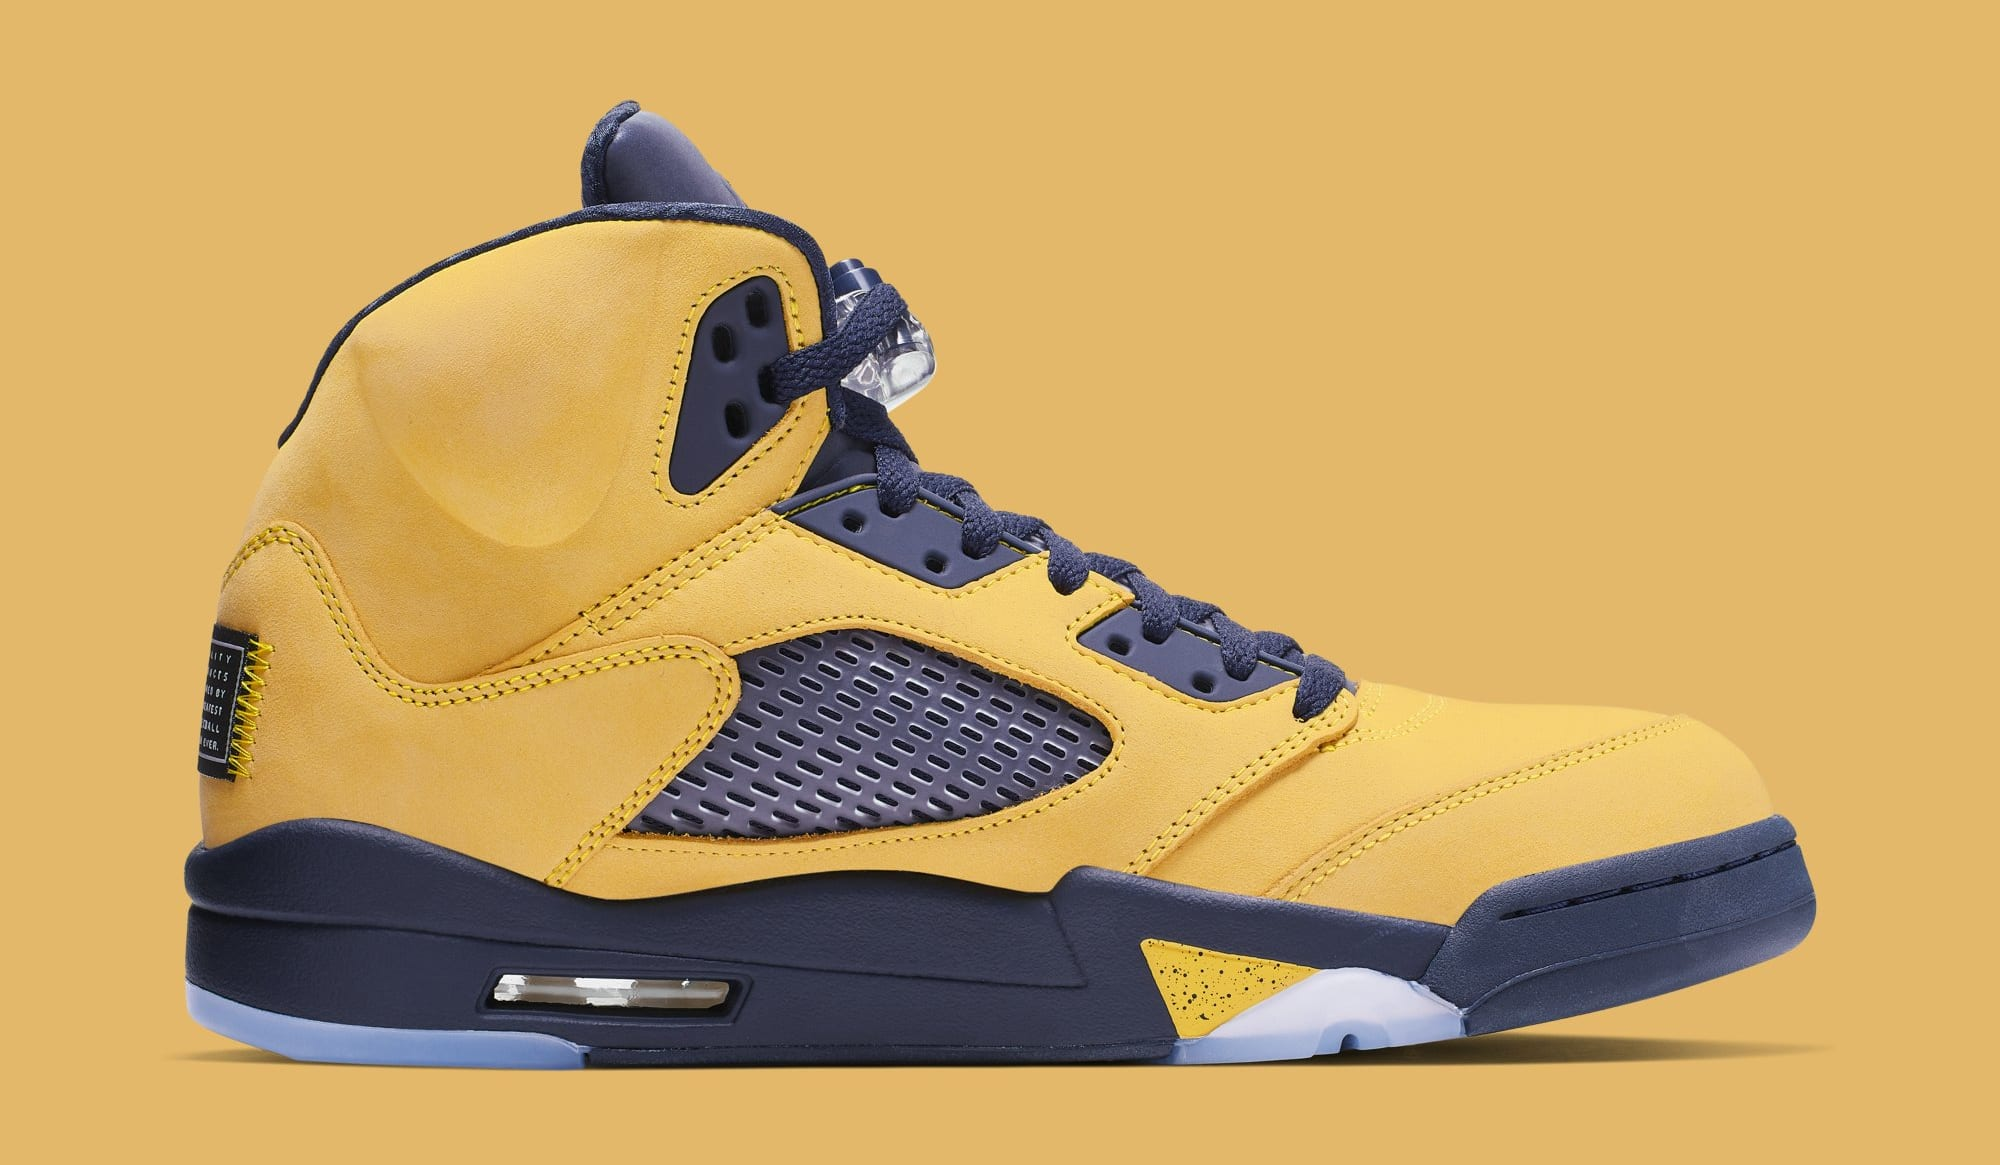 Air Jordan 5 'Michigan' CQ9541-704 (Medial)